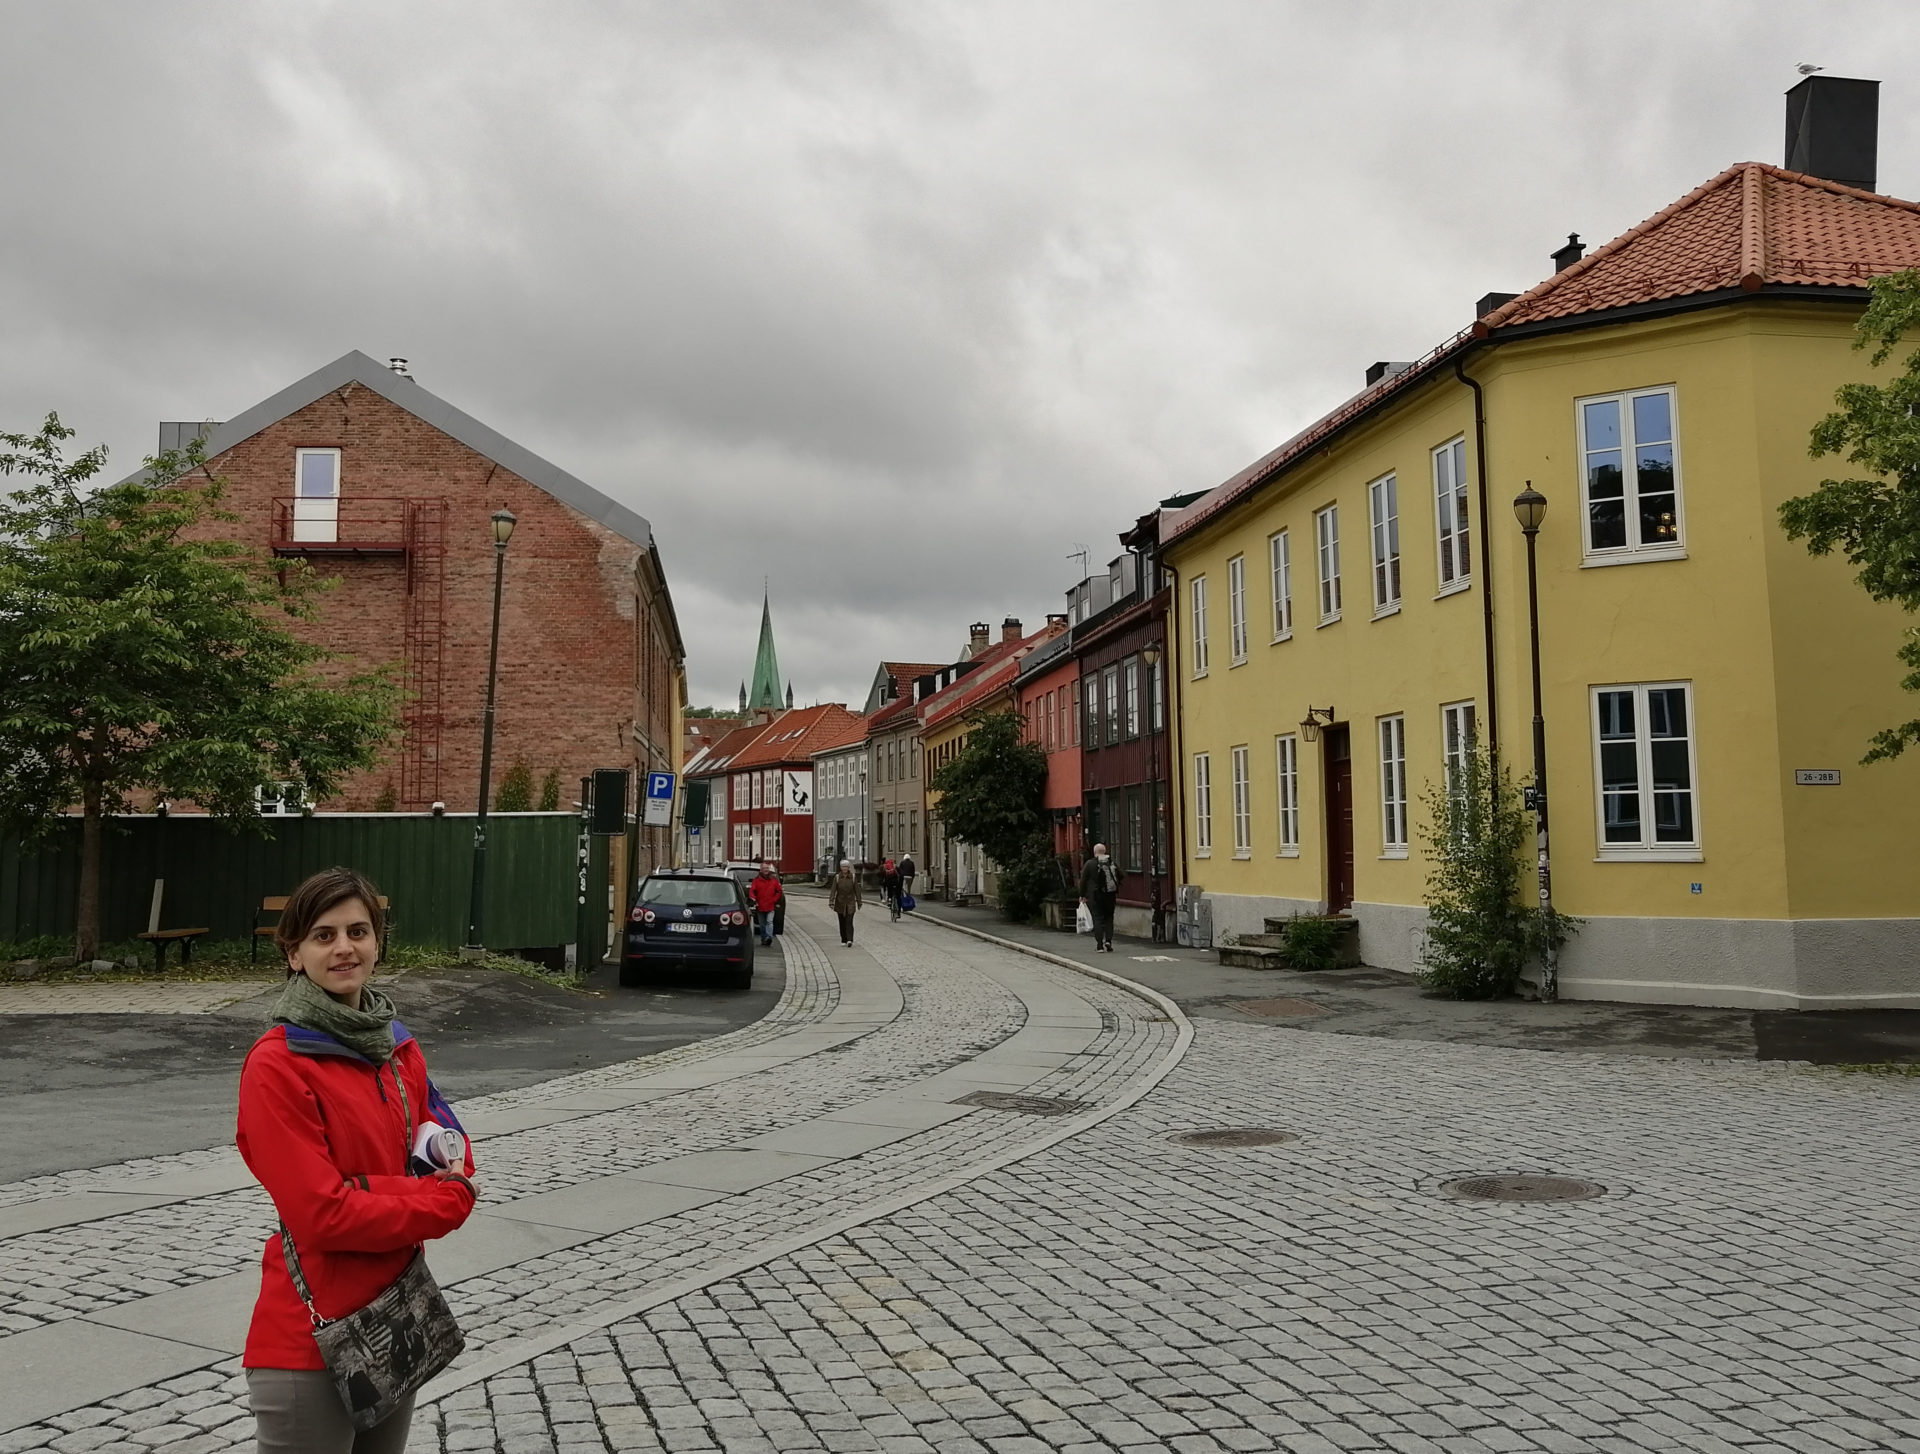 Barbara Re, while enjoying some free time in Trondheim.